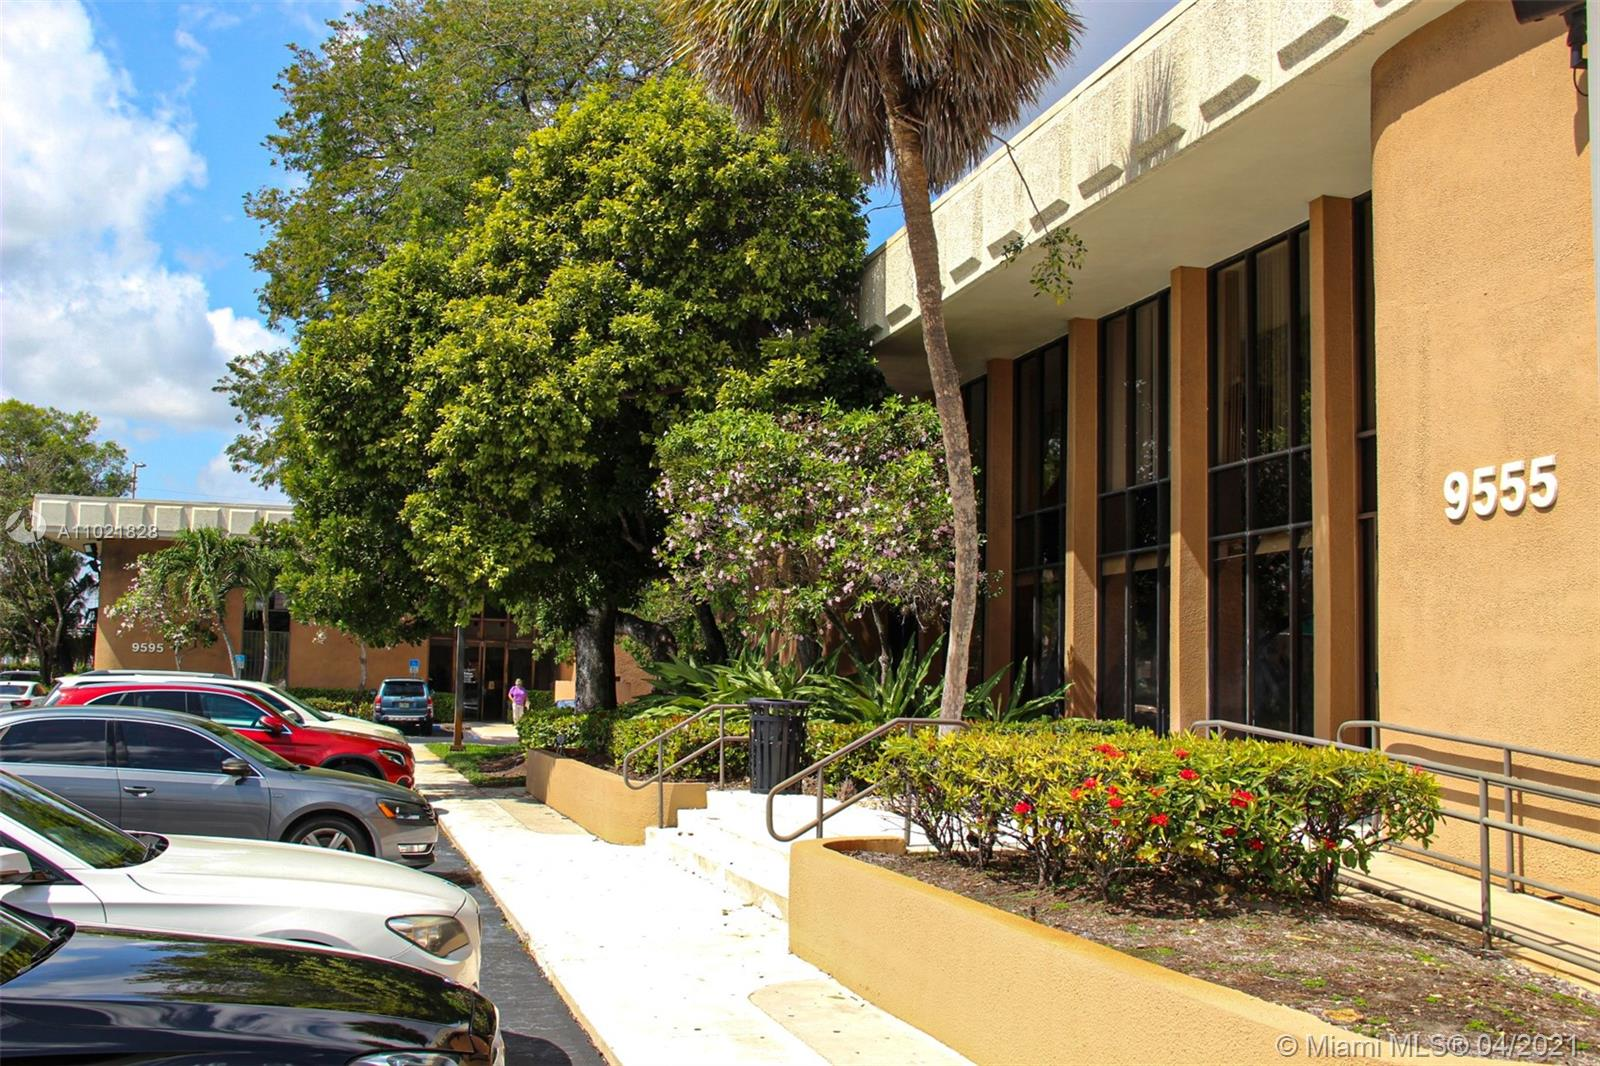 9555 N KENDALL DRIVE #100 For Sale A11021828, FL